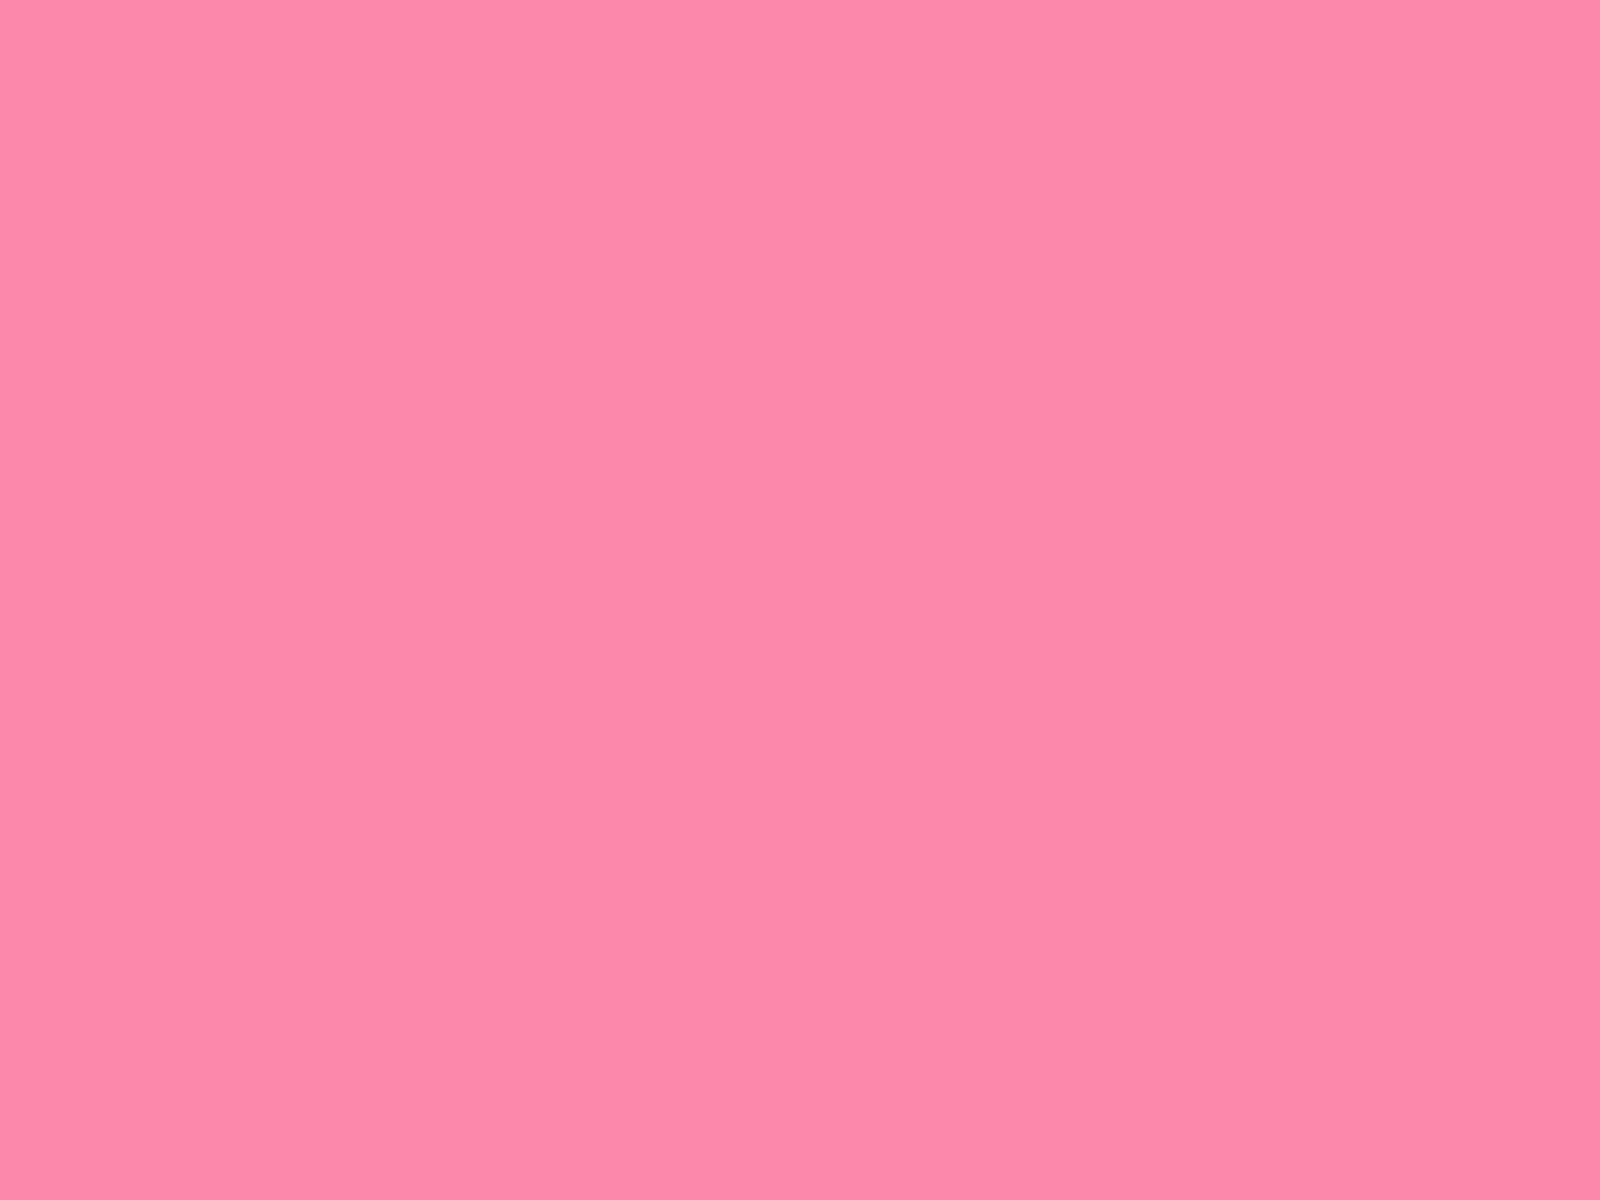 1600x1200 Tickle Me Pink Solid Color Background